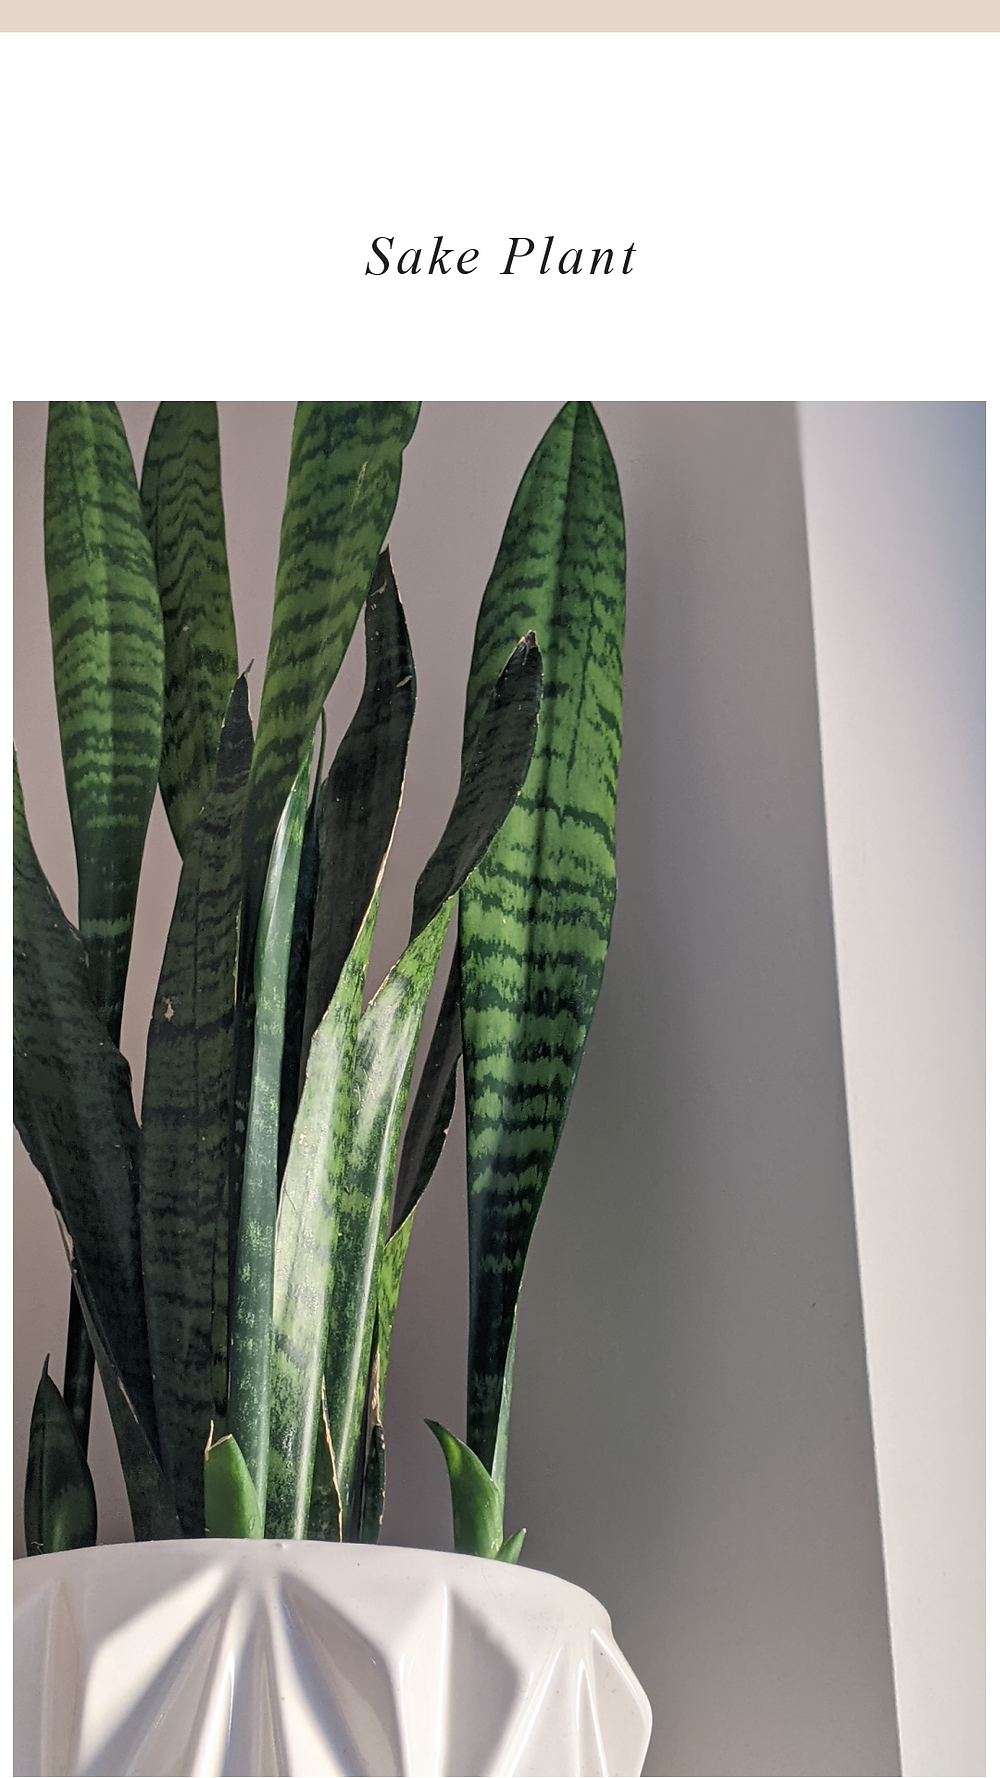 Snake plant in pot, amazing for killing toxins in the air in your home.